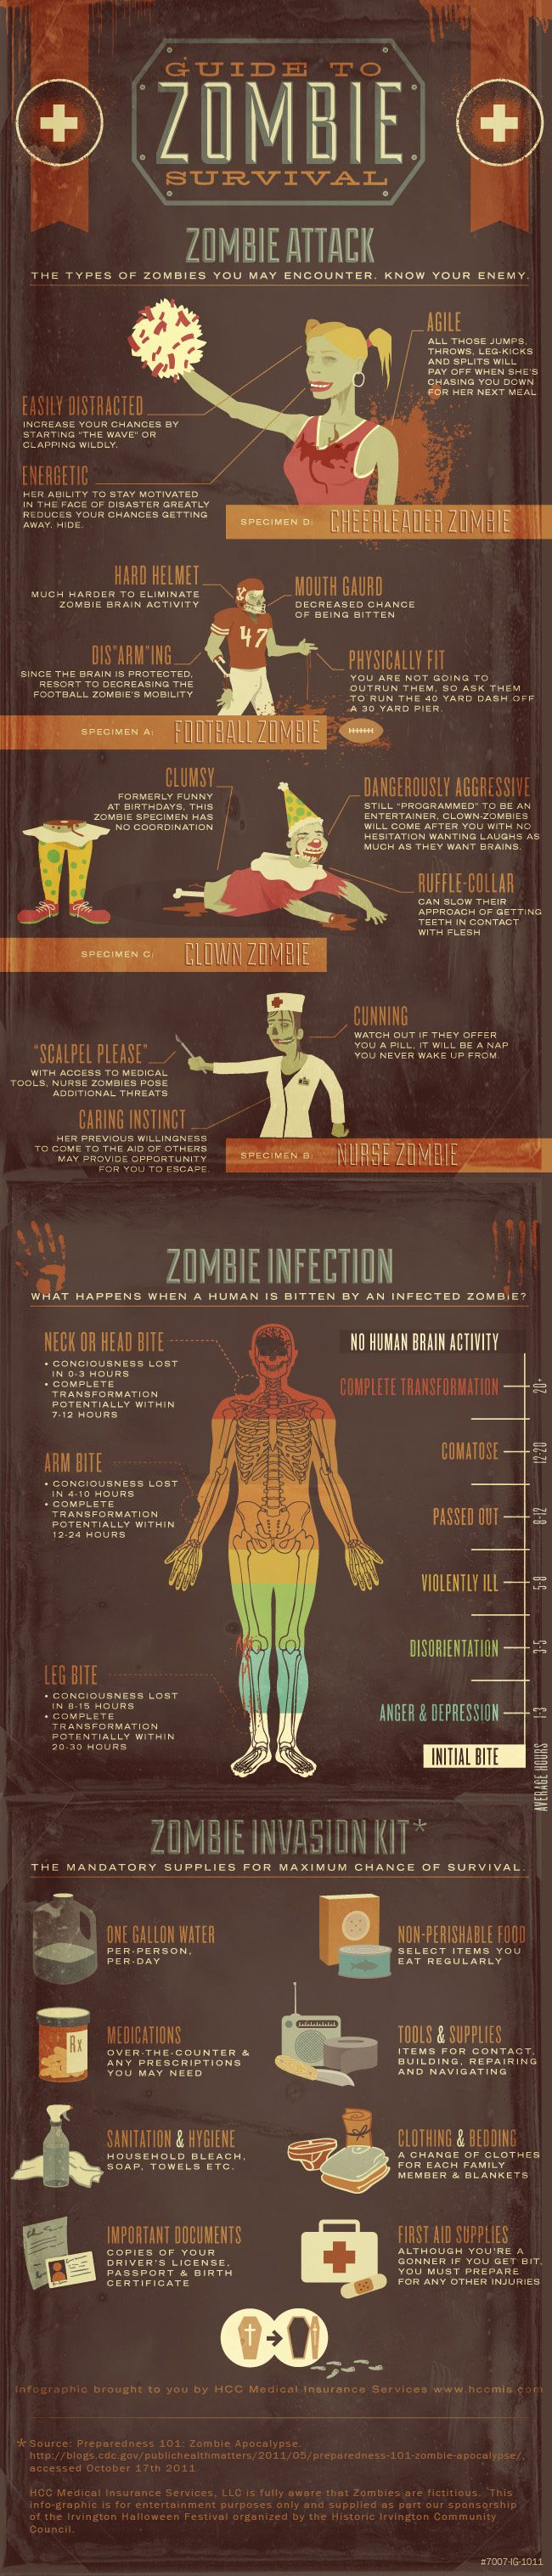 Guide To Zombie Survival. #infographic